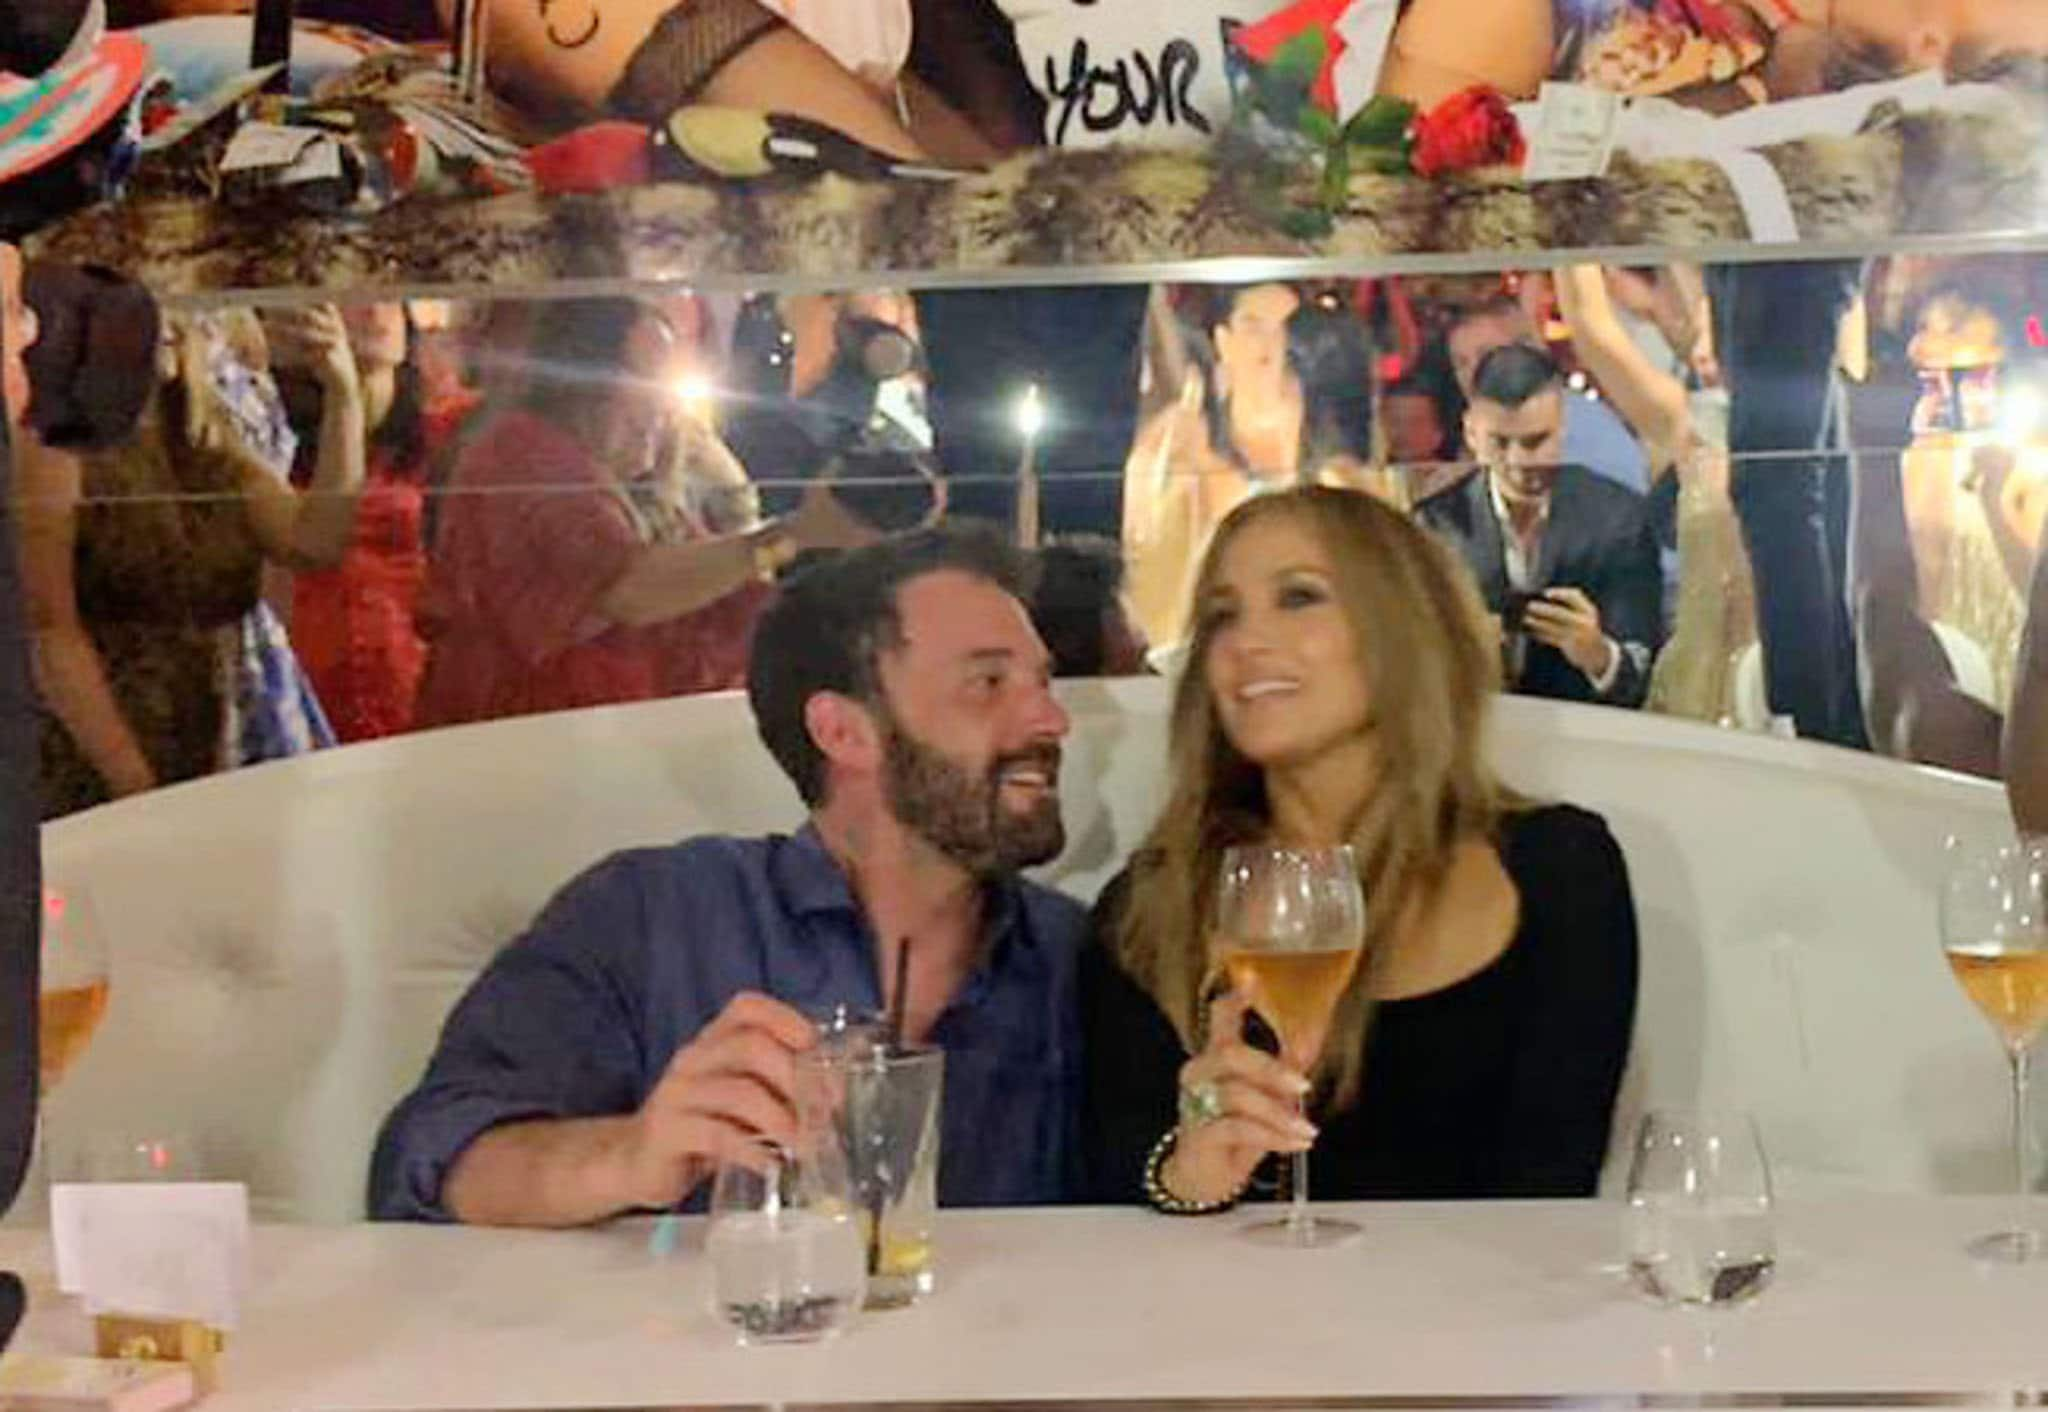 Ben Affleck and Jennifer Lopez step out for dinner date at L'Opera restaurant in St. Tropez on July 24, 2021